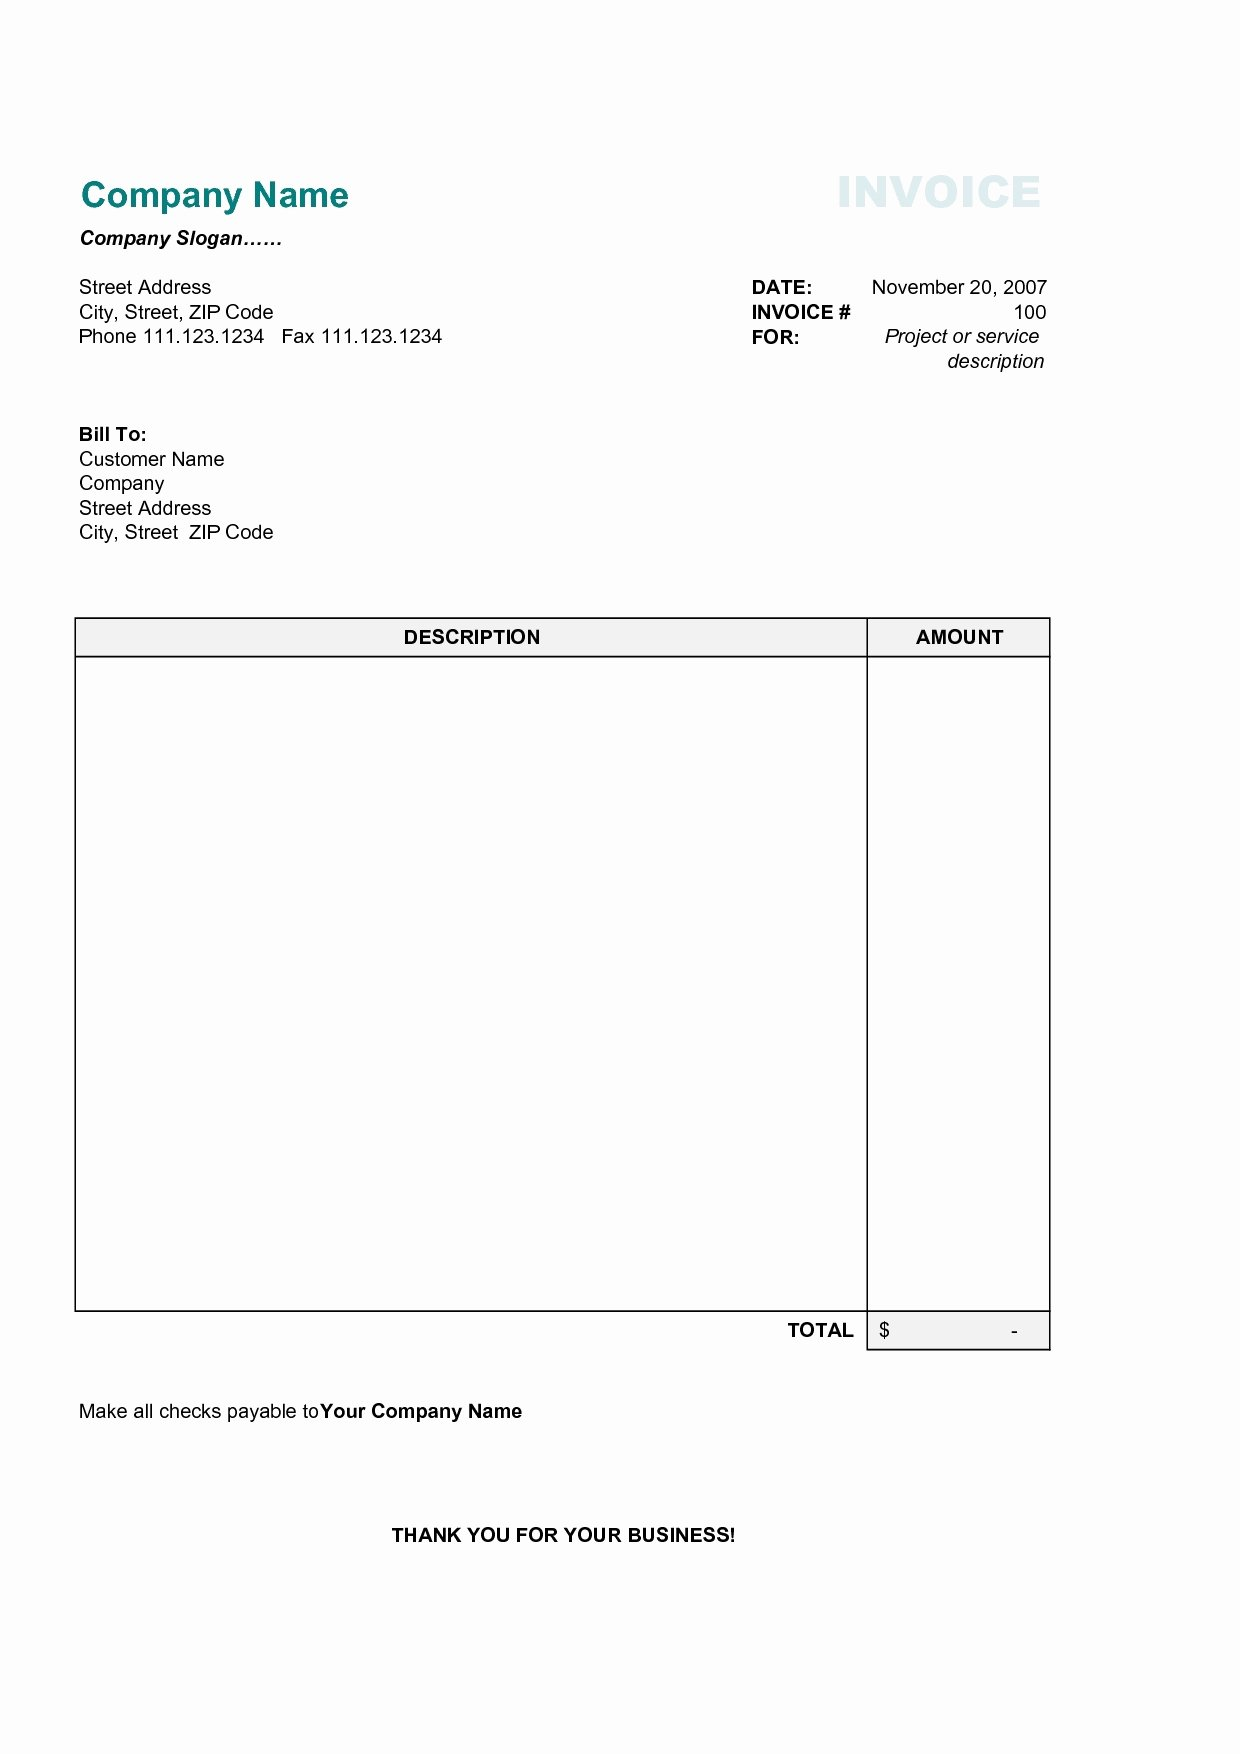 Blank Invoice Template Pdf Fresh Simple Invoice Template Pdf